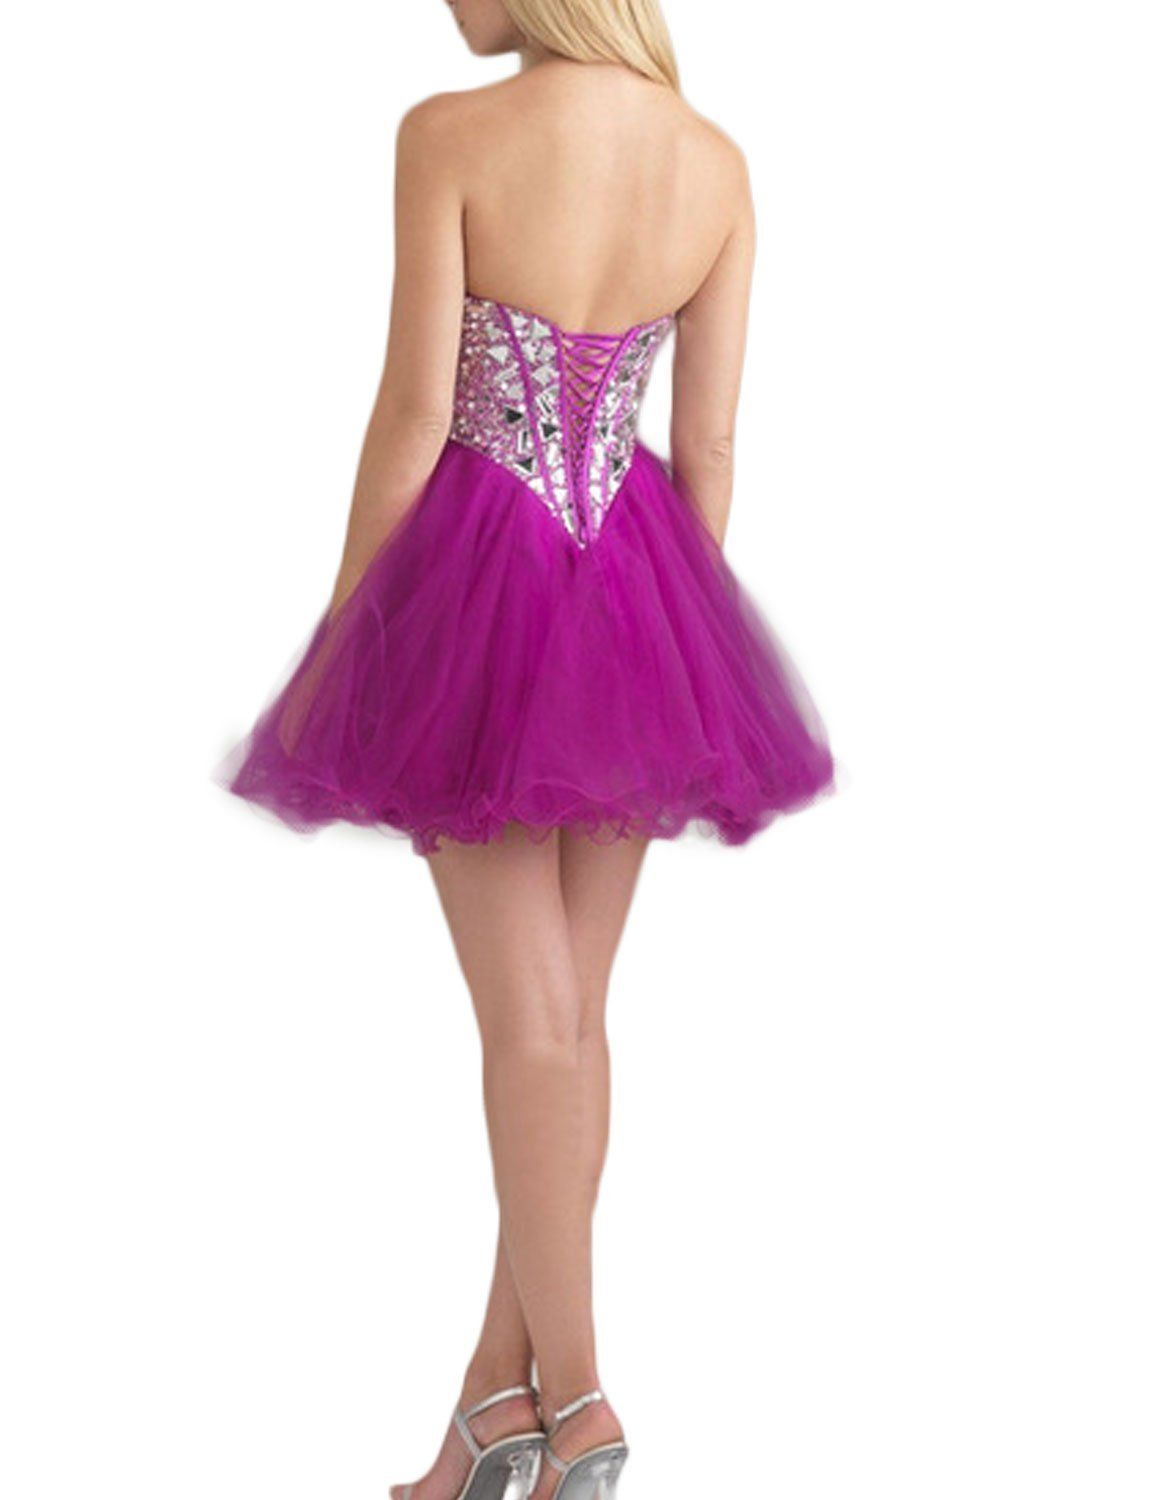 Lovingdress womens homecoming dress sweetheart with sequins short